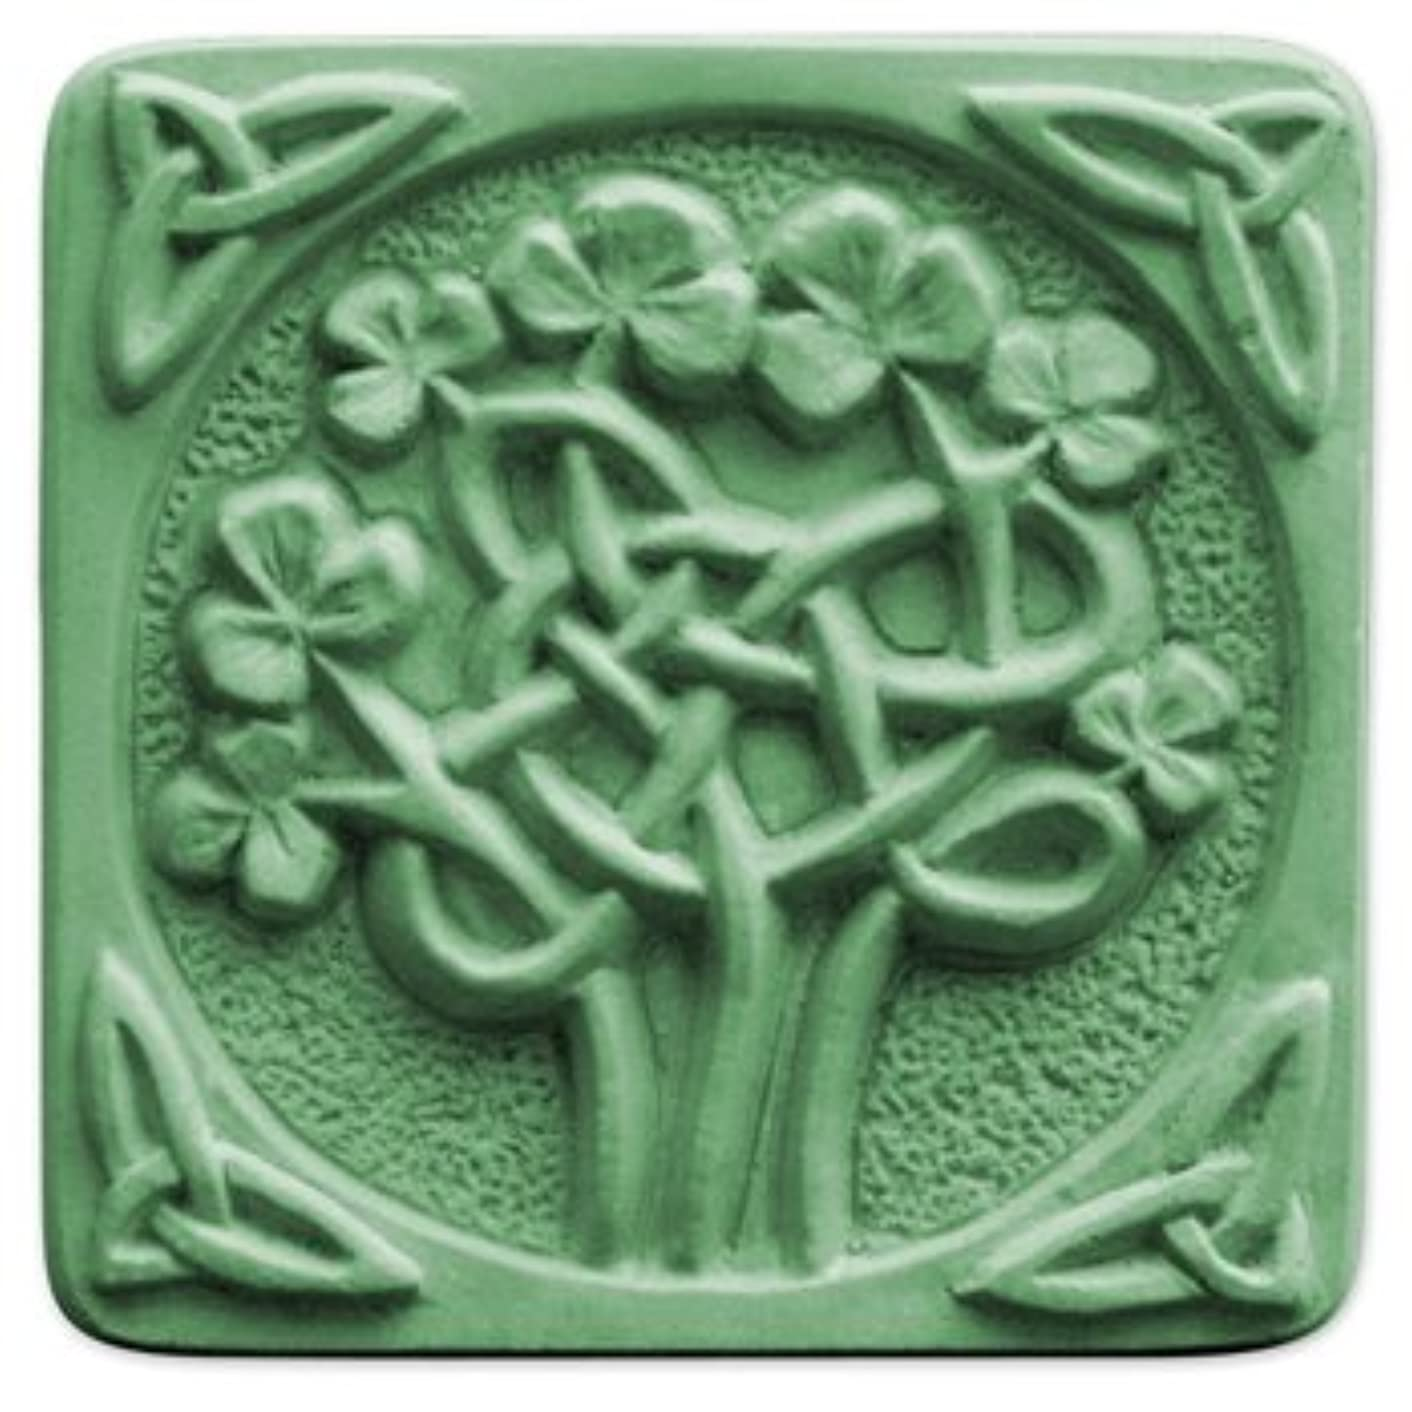 Milky Way Celtic Clover Soap Mold Tray - Melt and Pour - Cold Process - Clear PVC - Not Silicone - MW 64